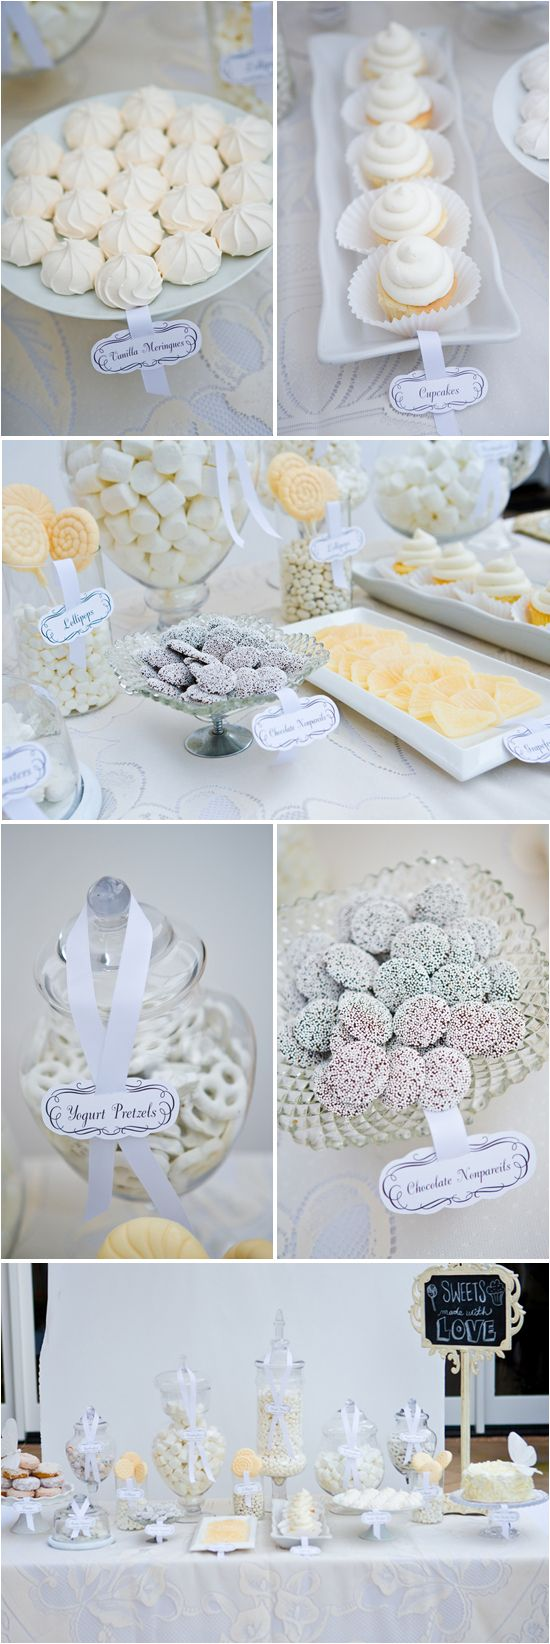 185 best Bridal Shower Ideas images on Pinterest | Rustic wedding ...